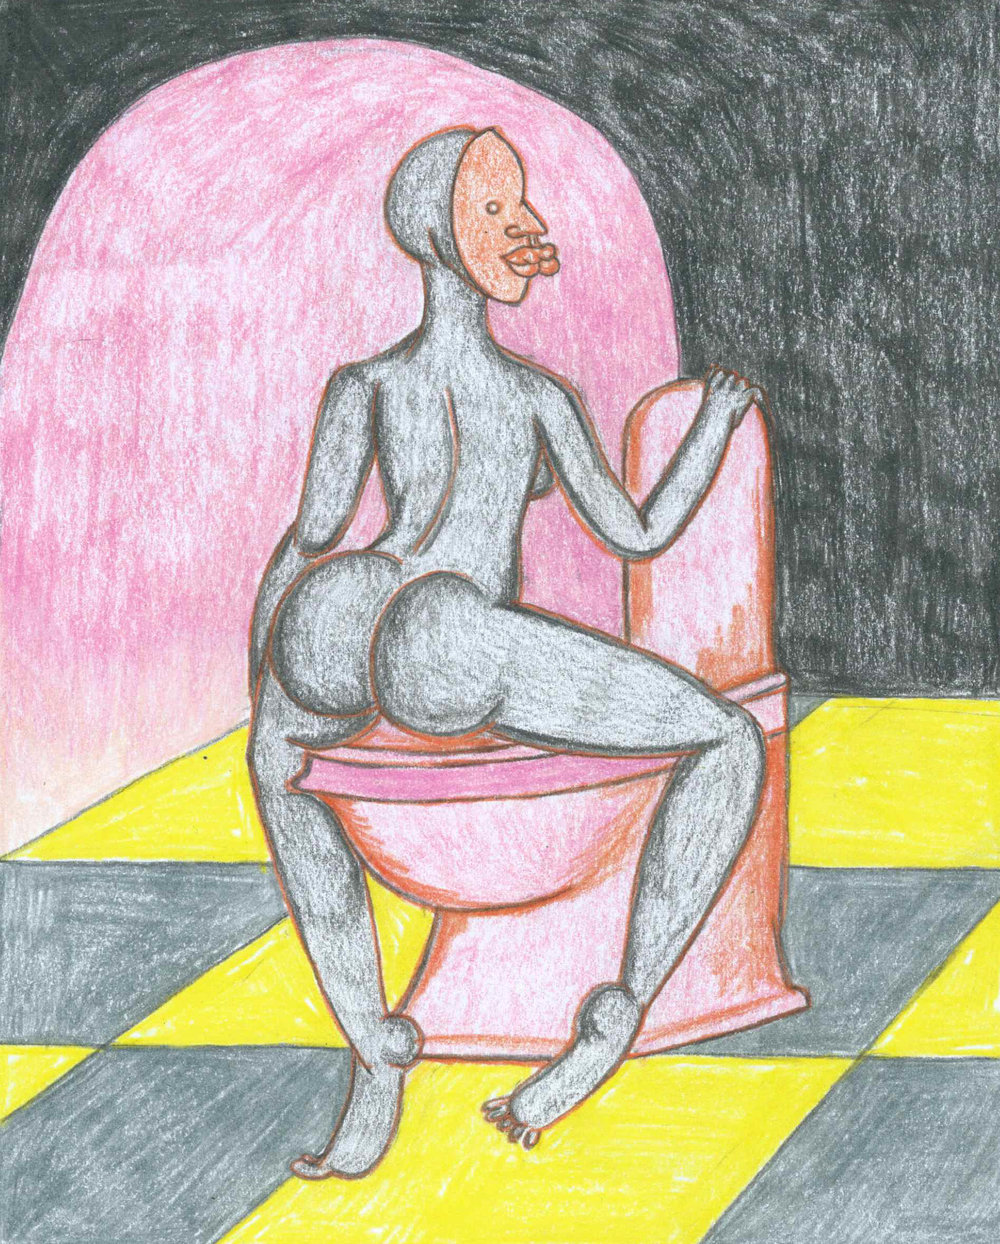 PEEING AT HOME